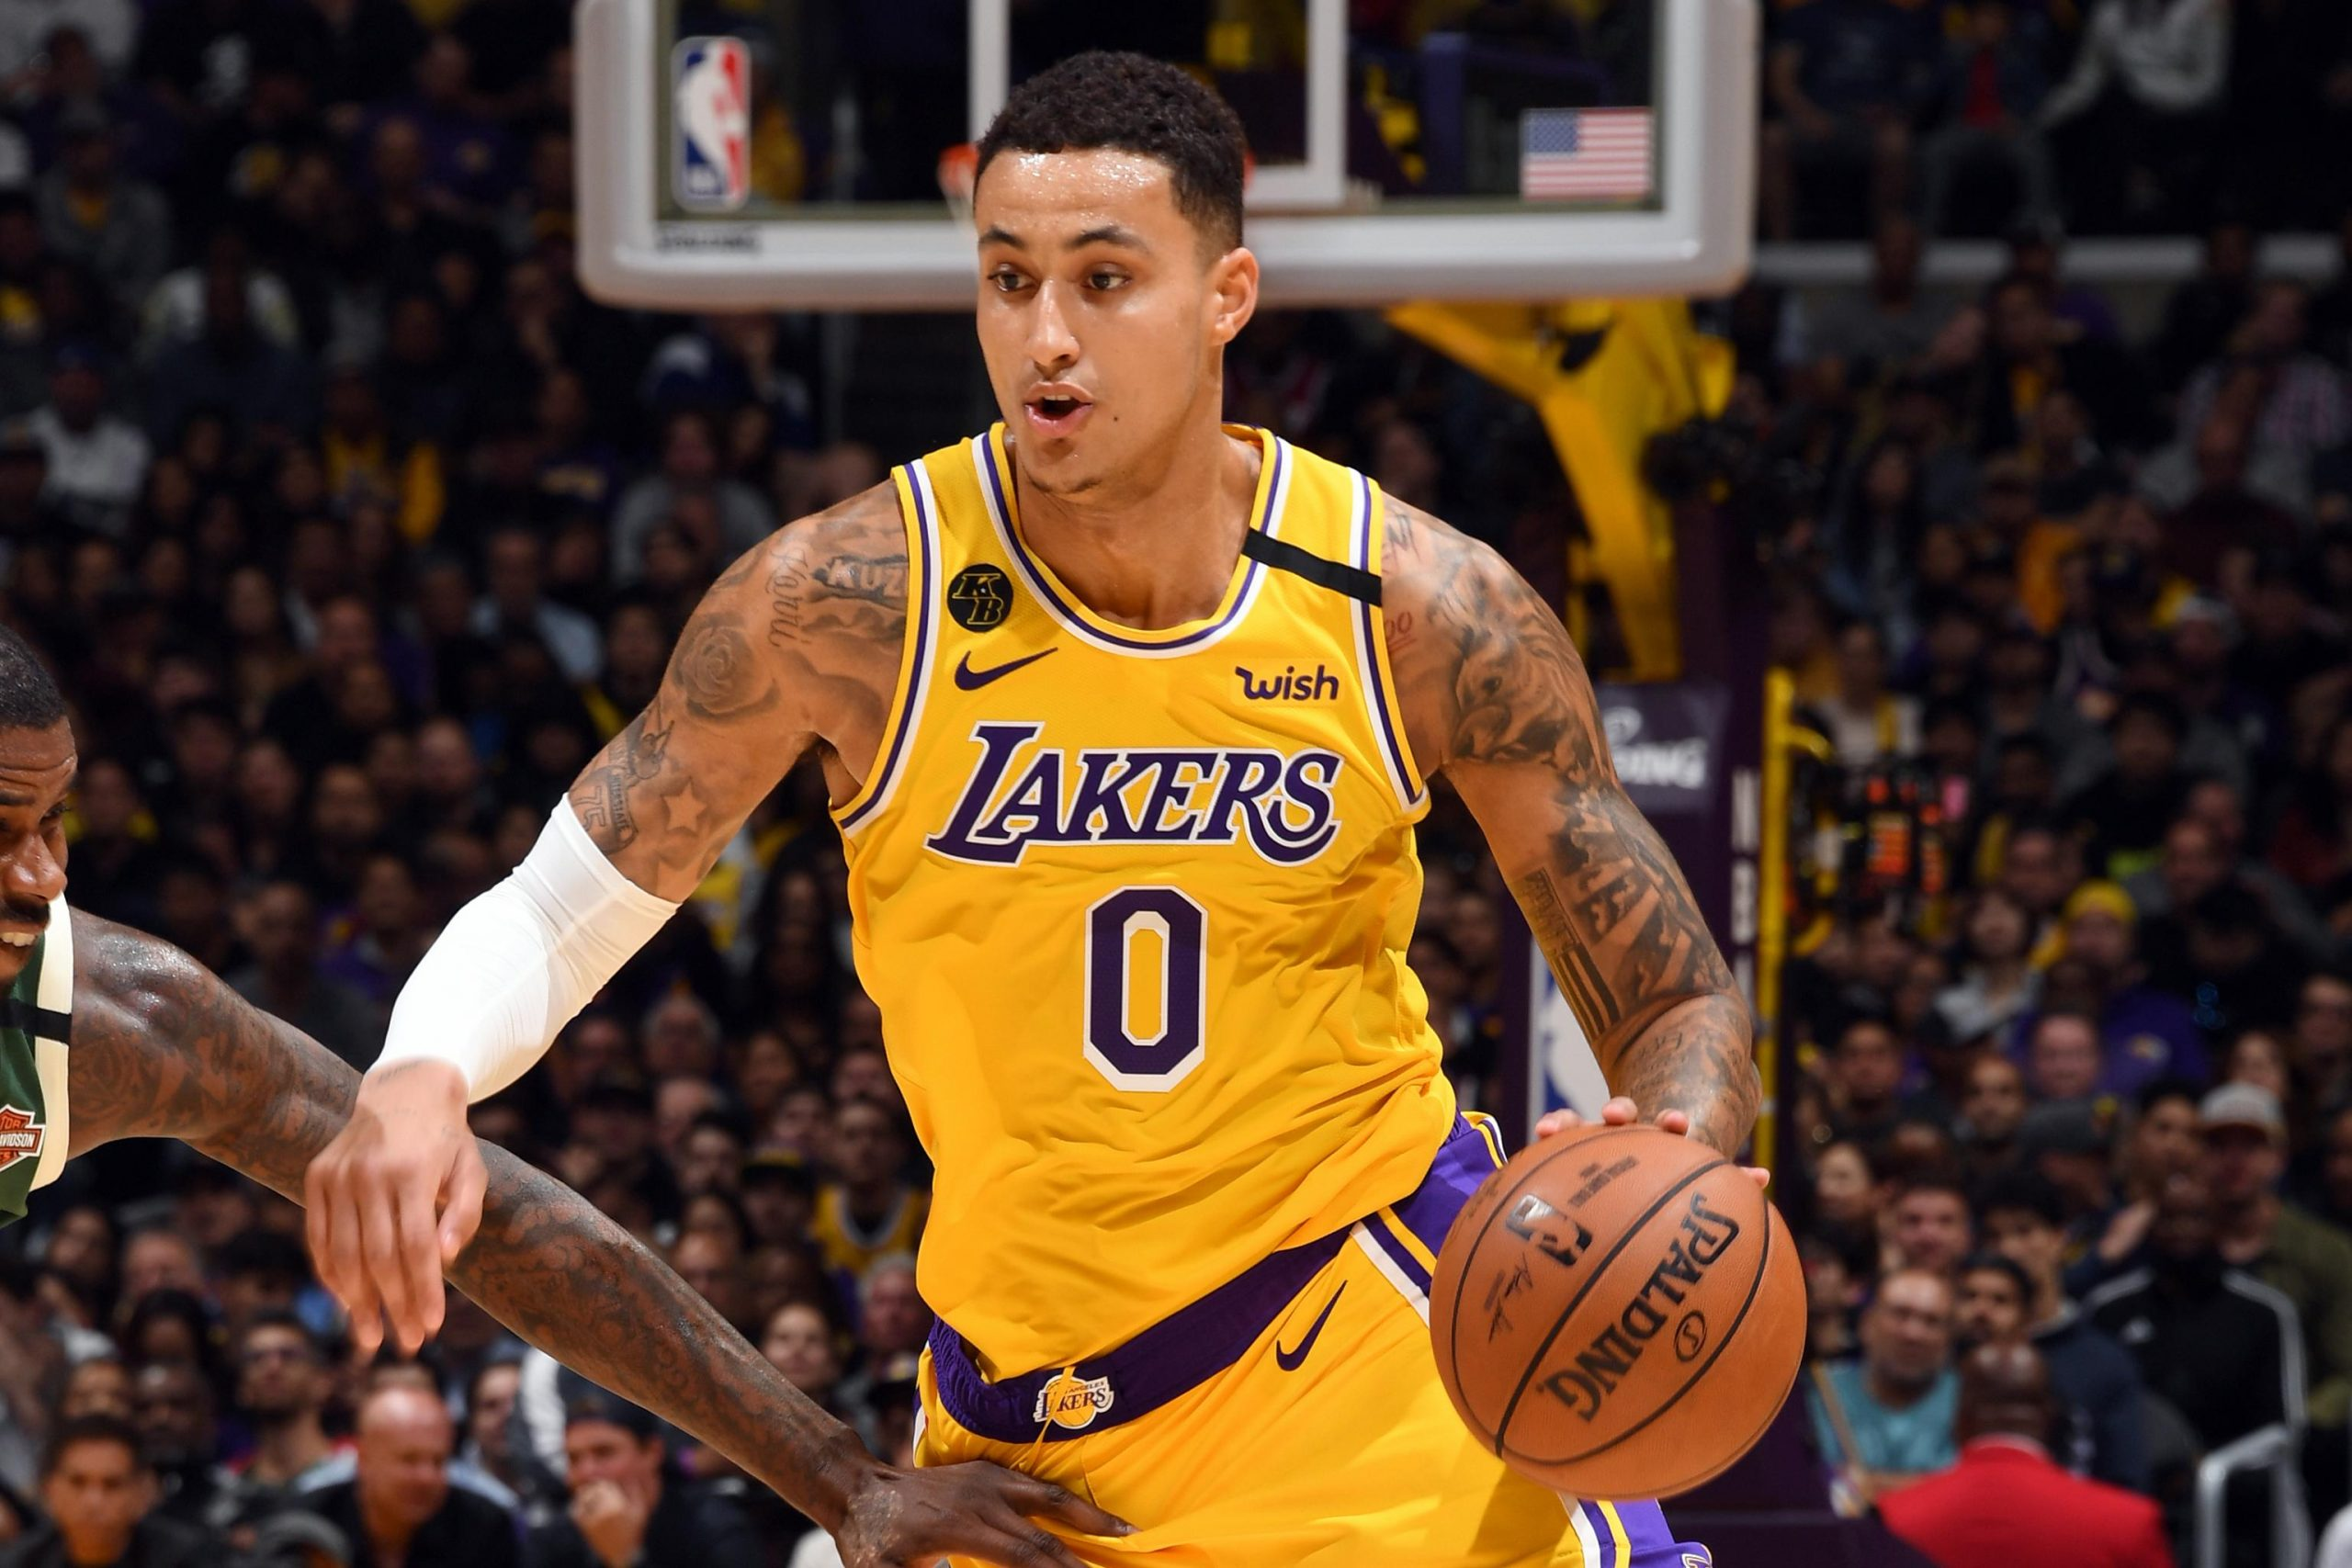 Lakers Player